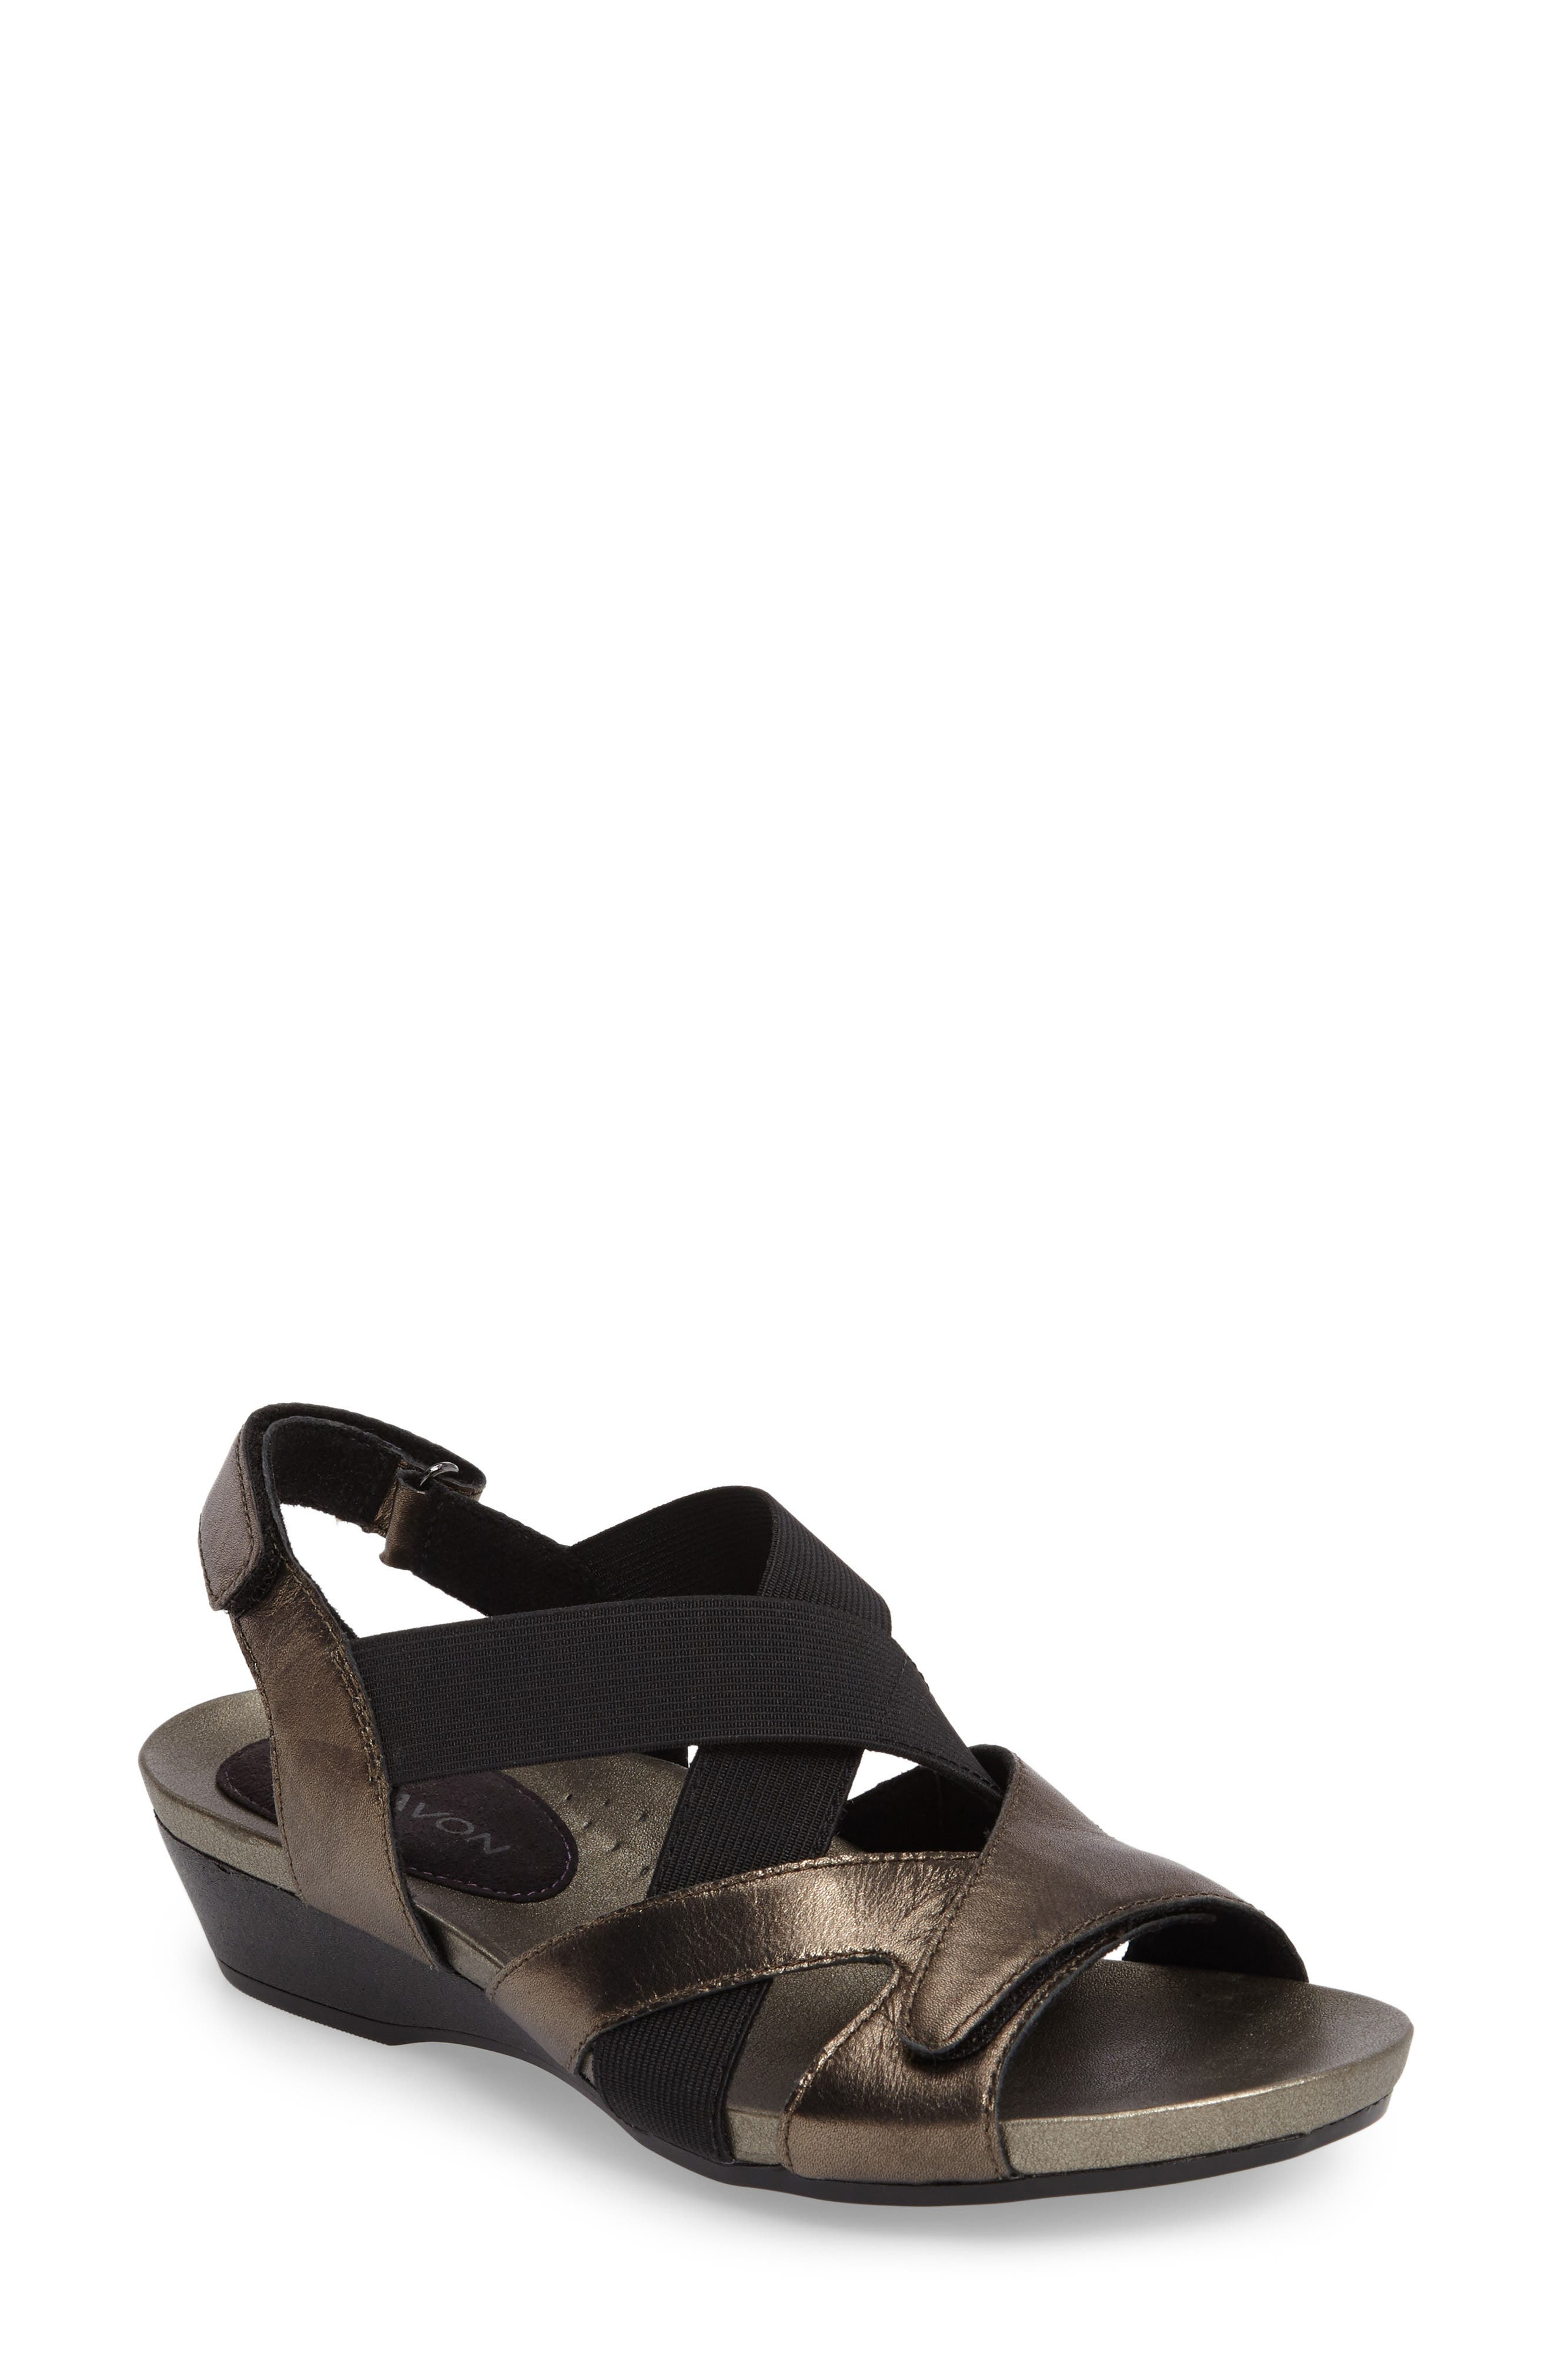 Standon Cross Strap Sandal,                         Main,                         color, Pewter Fabric